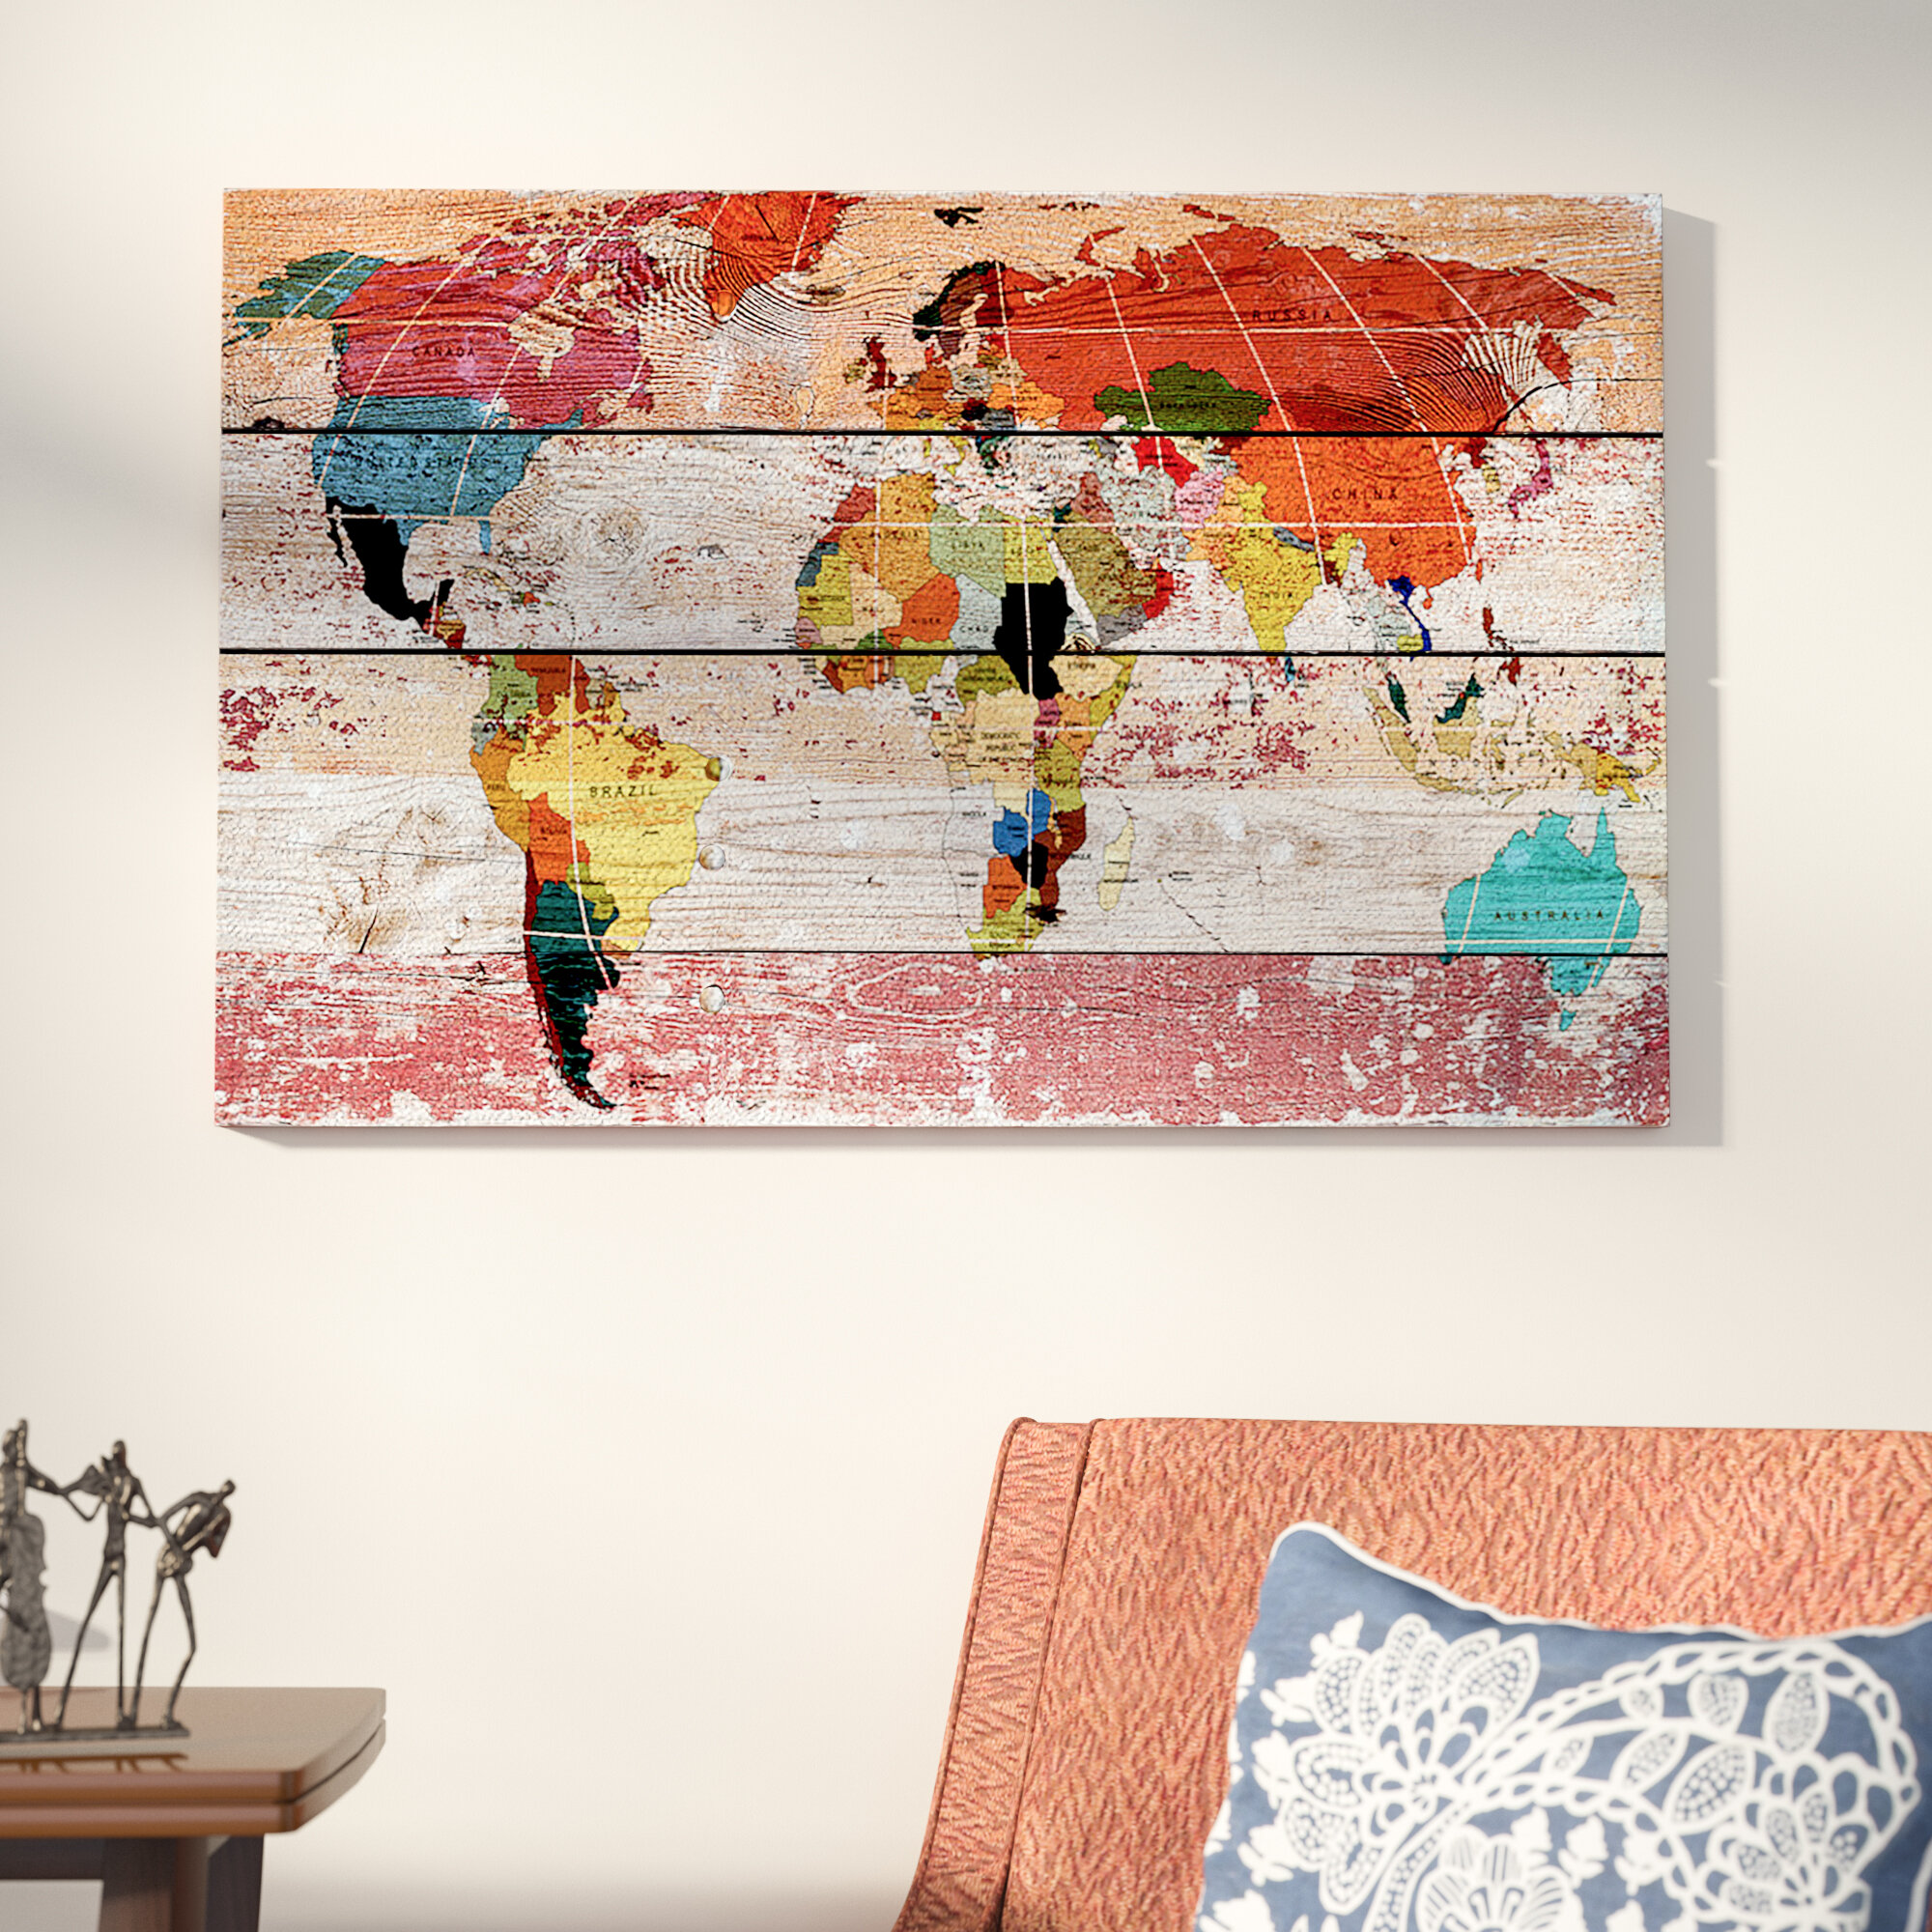 592fd368cd1 World Menagerie World Map Painting Print on Wrapped Canvas   Reviews ...